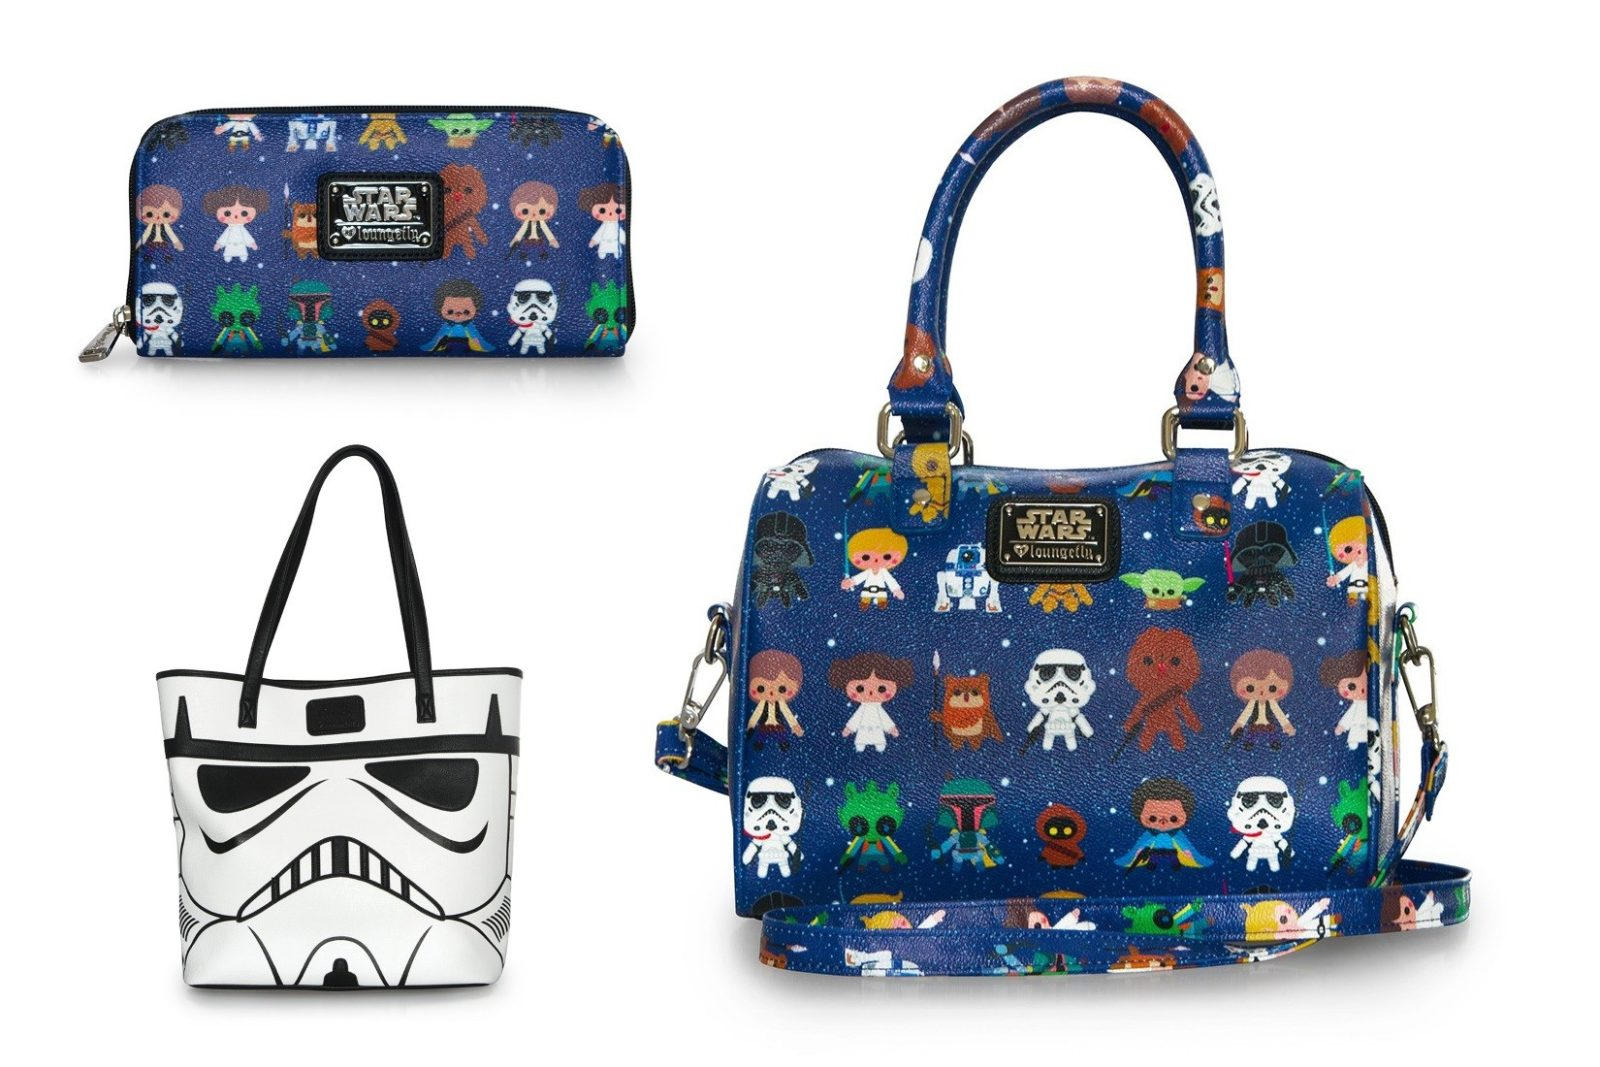 New Loungefly x Star Wars bags and wallets